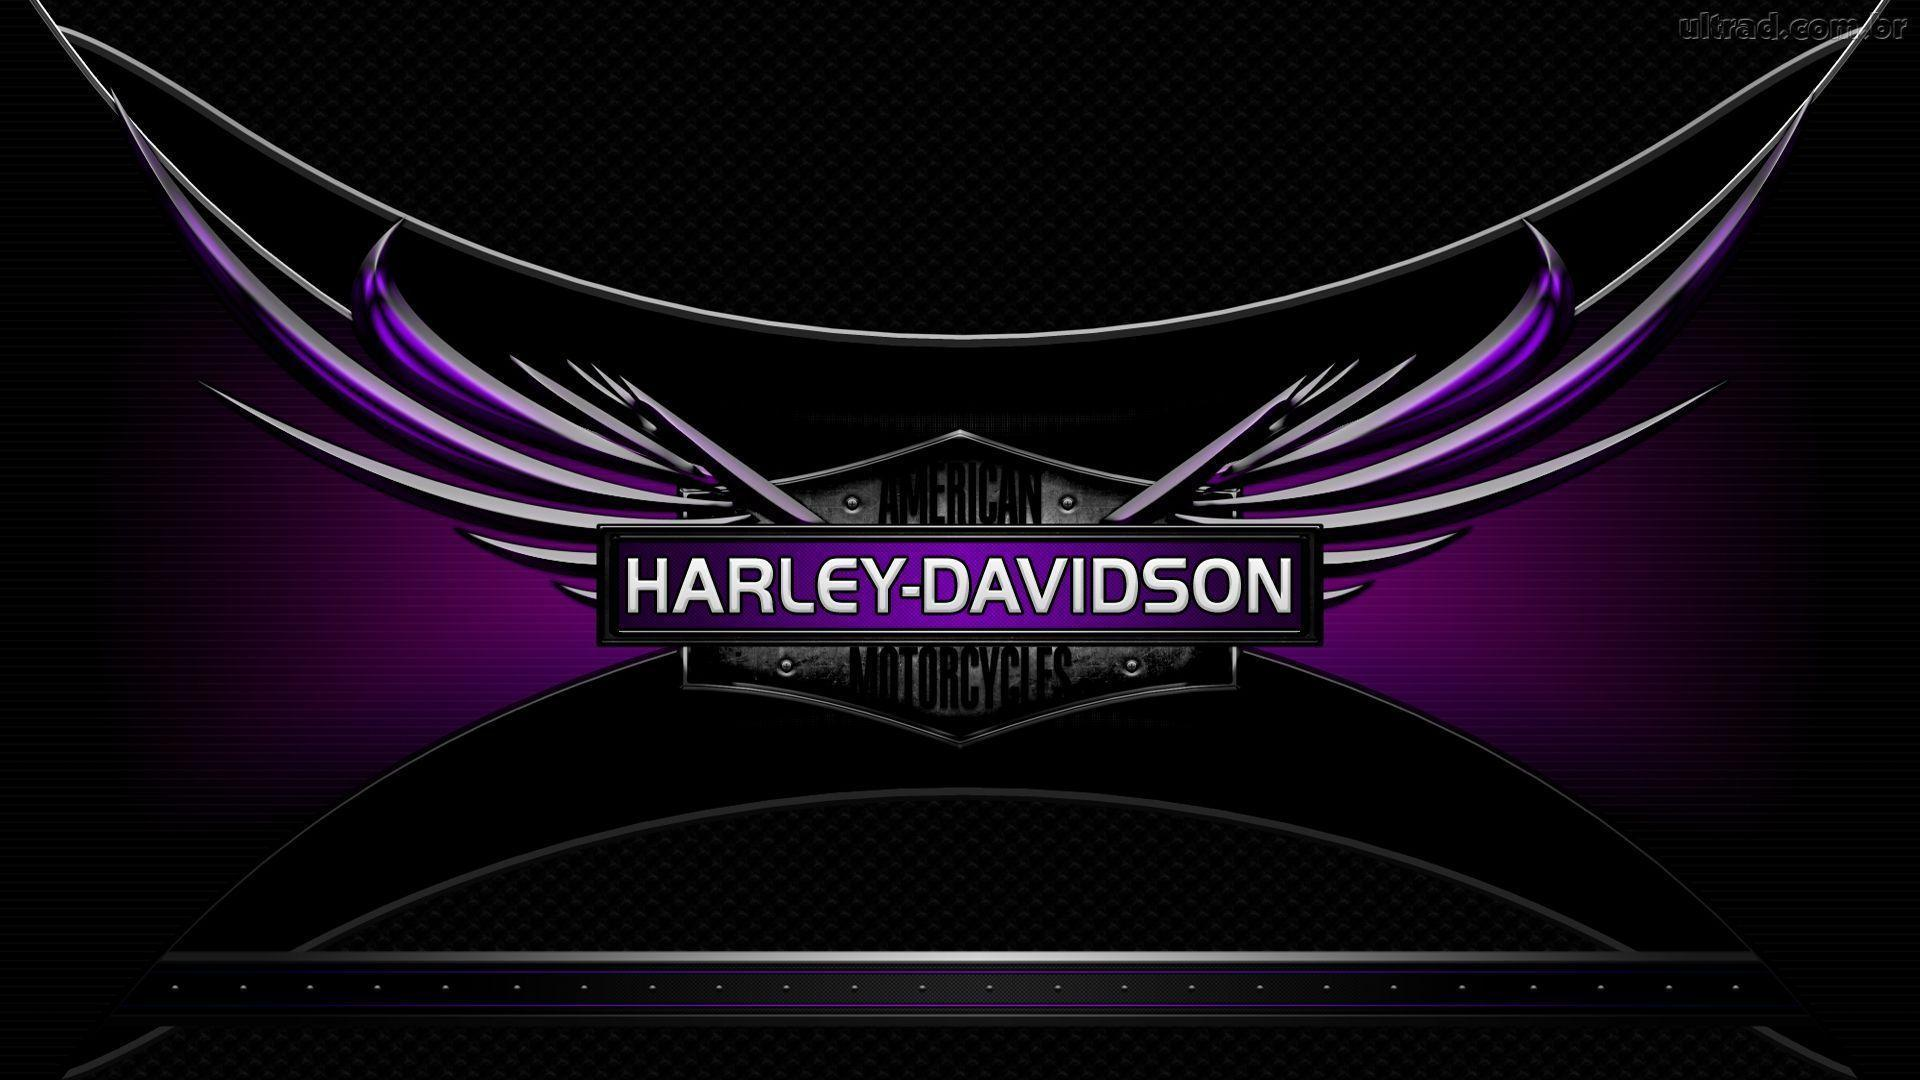 harleydavidson logo wallpapers wallpaper cave